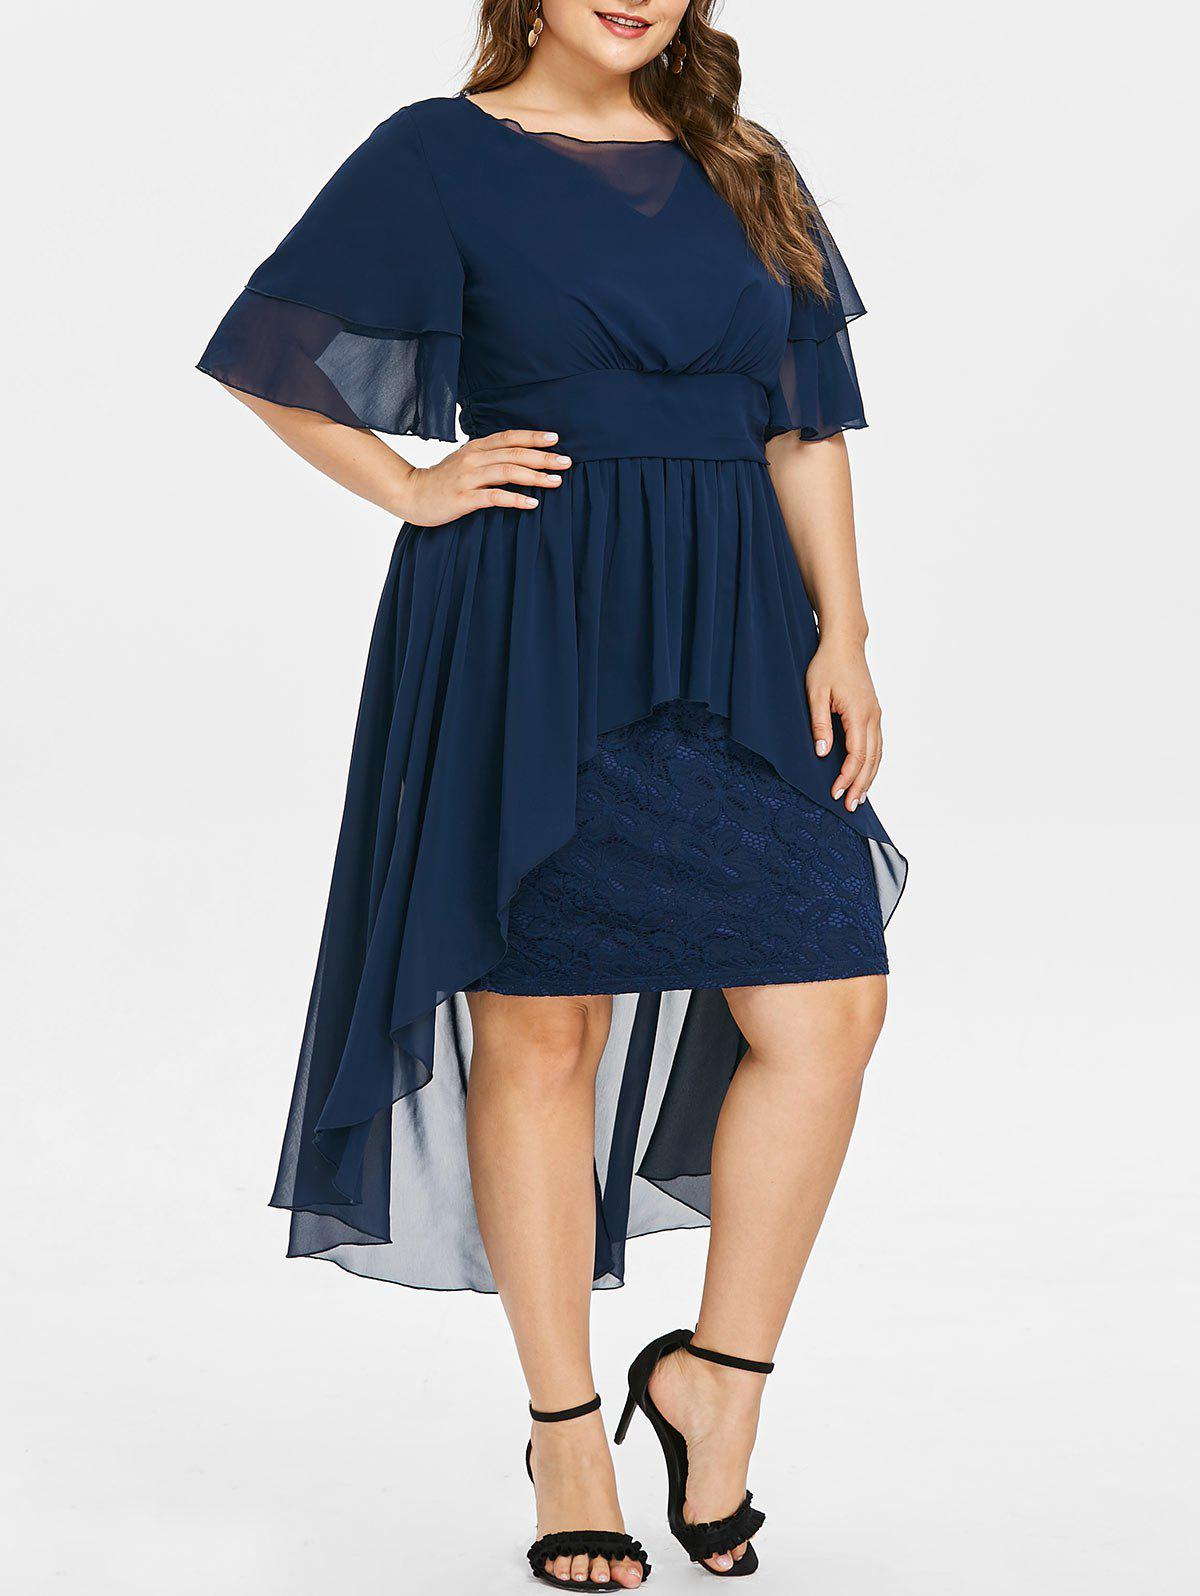 41% OFF] Lace Panel Plus Size High Low Dress | Rosegal